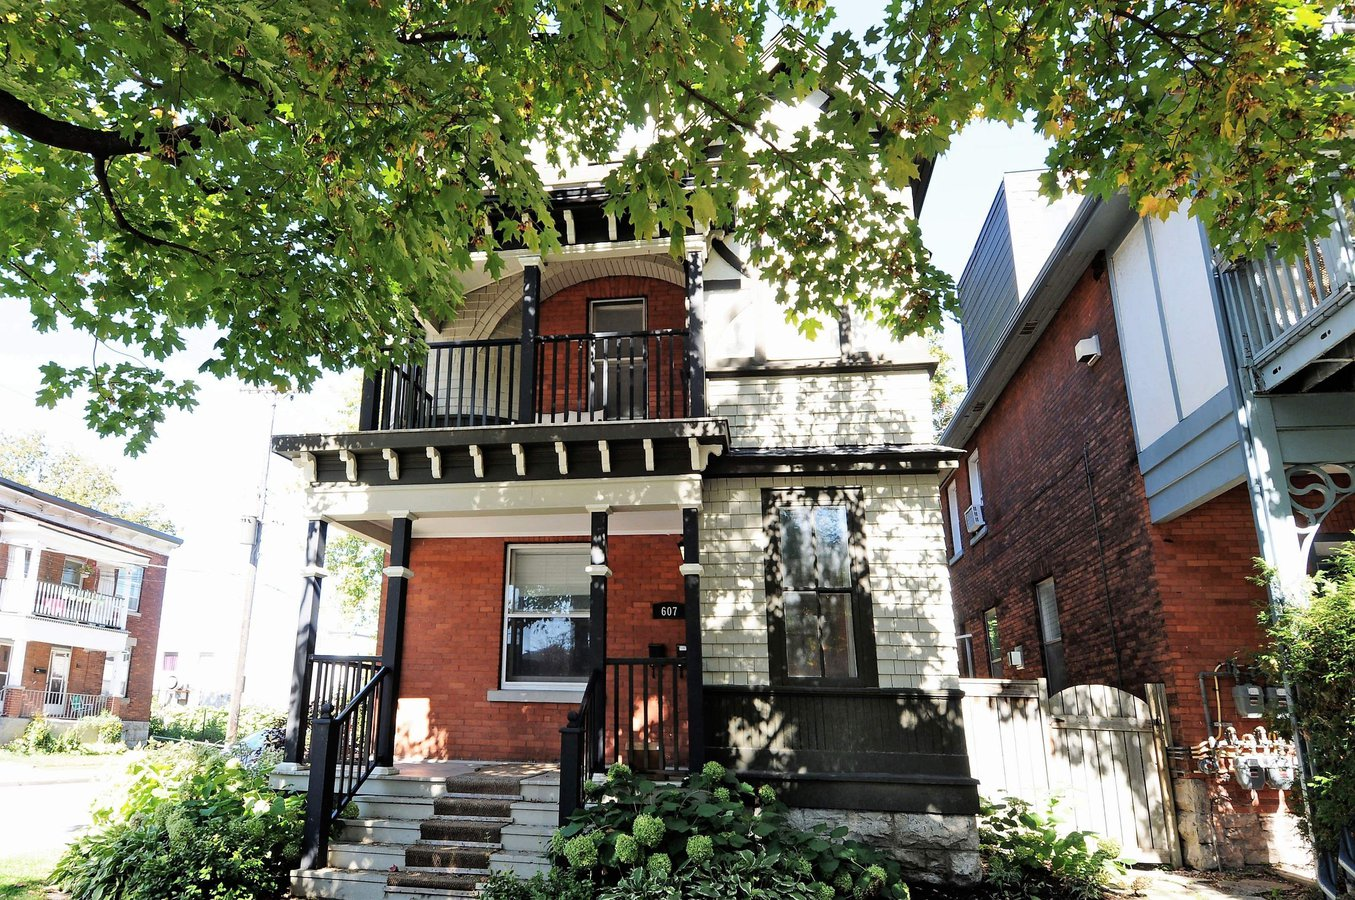 607 MacLaren Street in Ottawa, ON